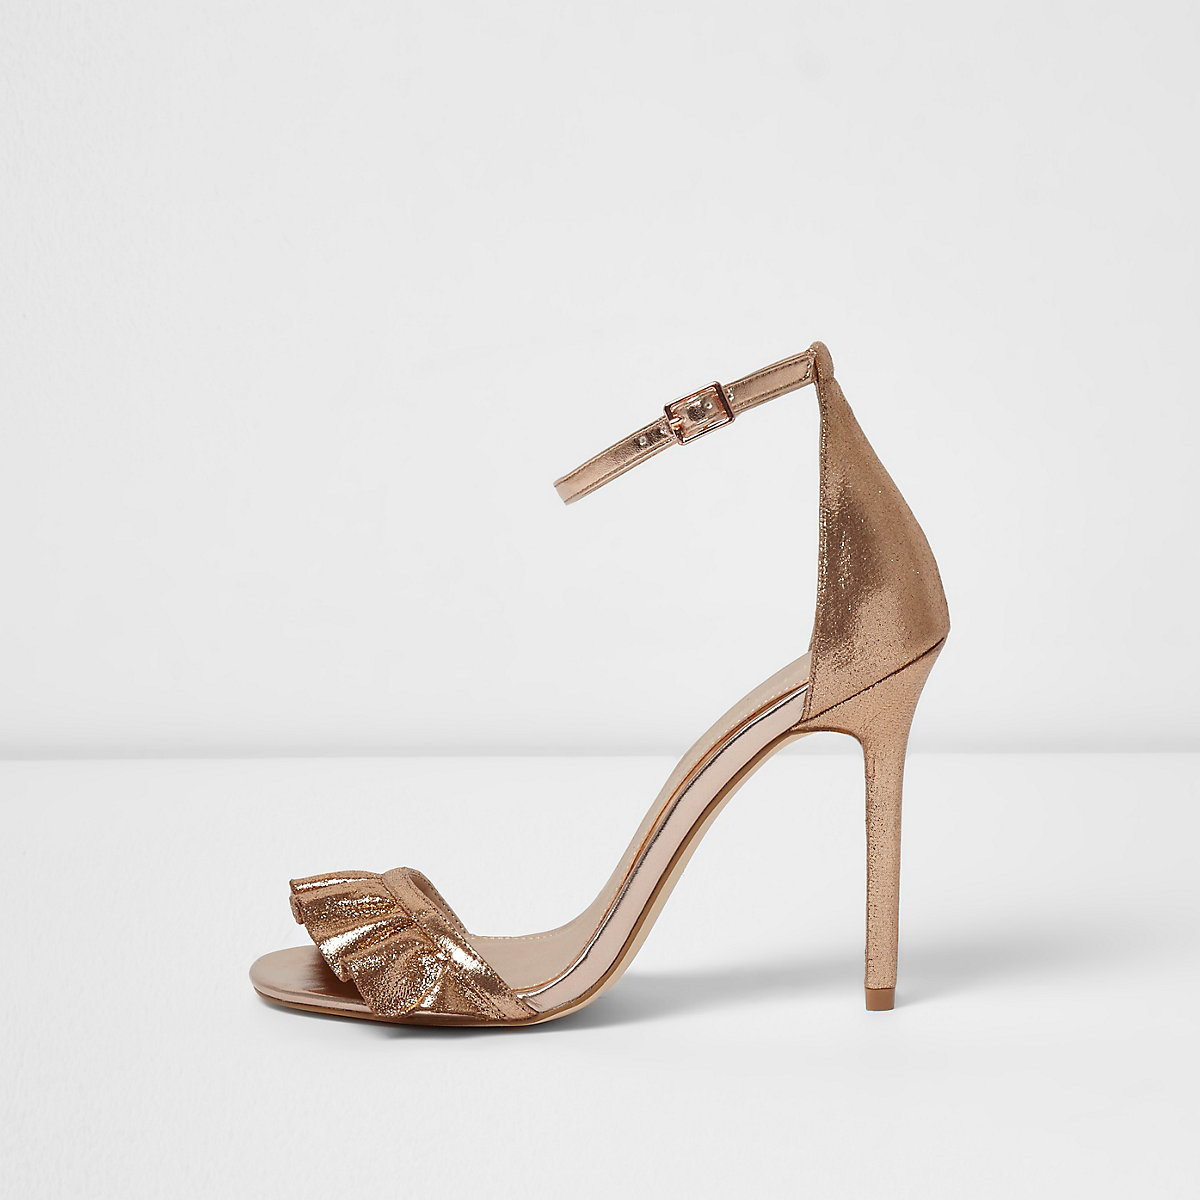 2041f77a6612 Rose gold frill strap barely there sandals - Sandals - Shoes   Boots - women